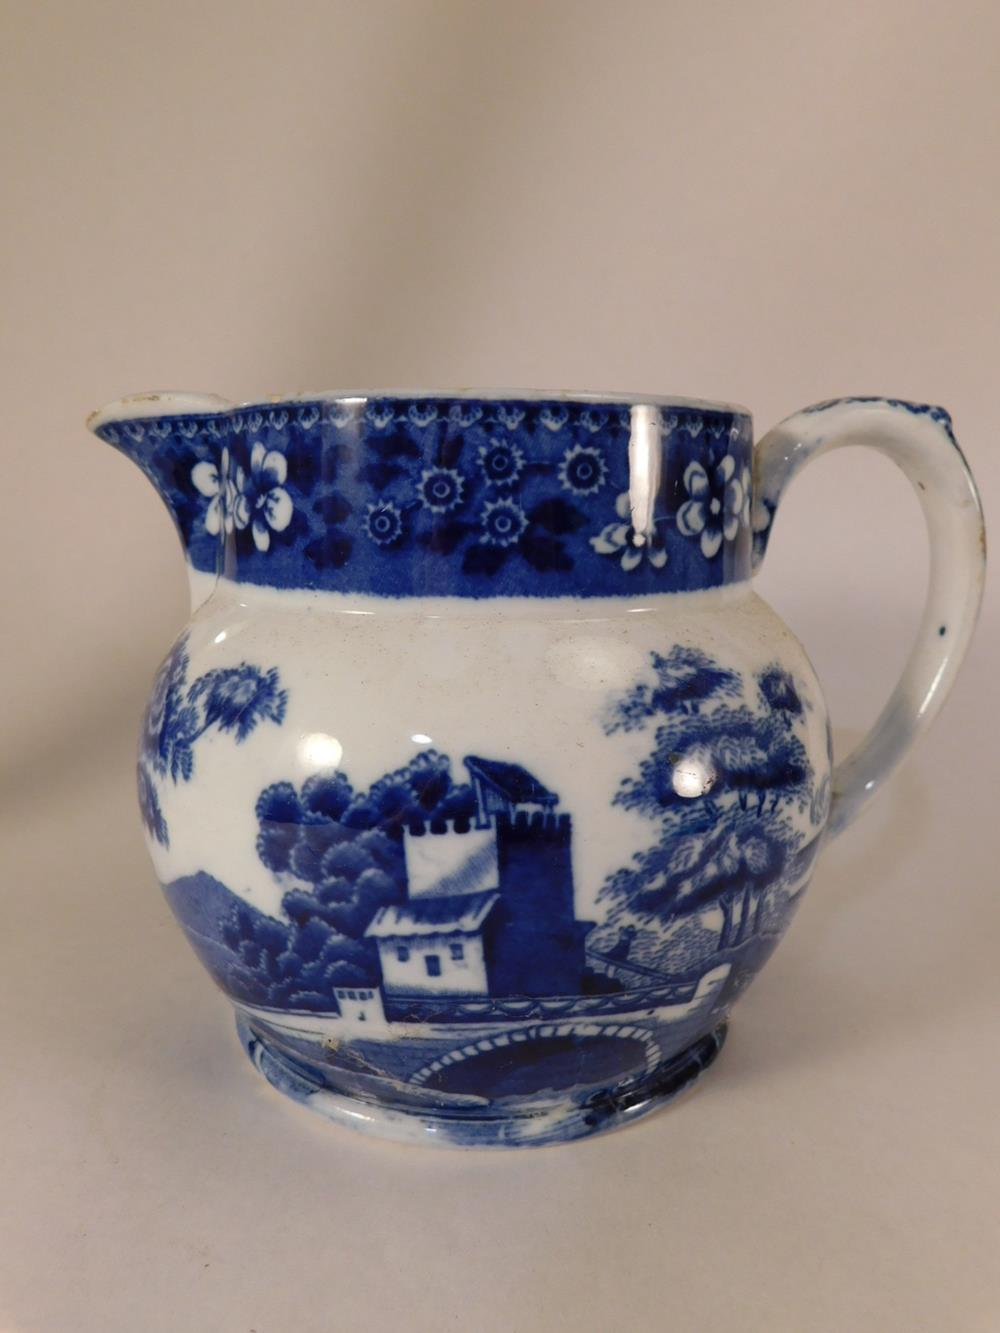 BLUE AND WHITE VINTAGE PITCHER CREAMER